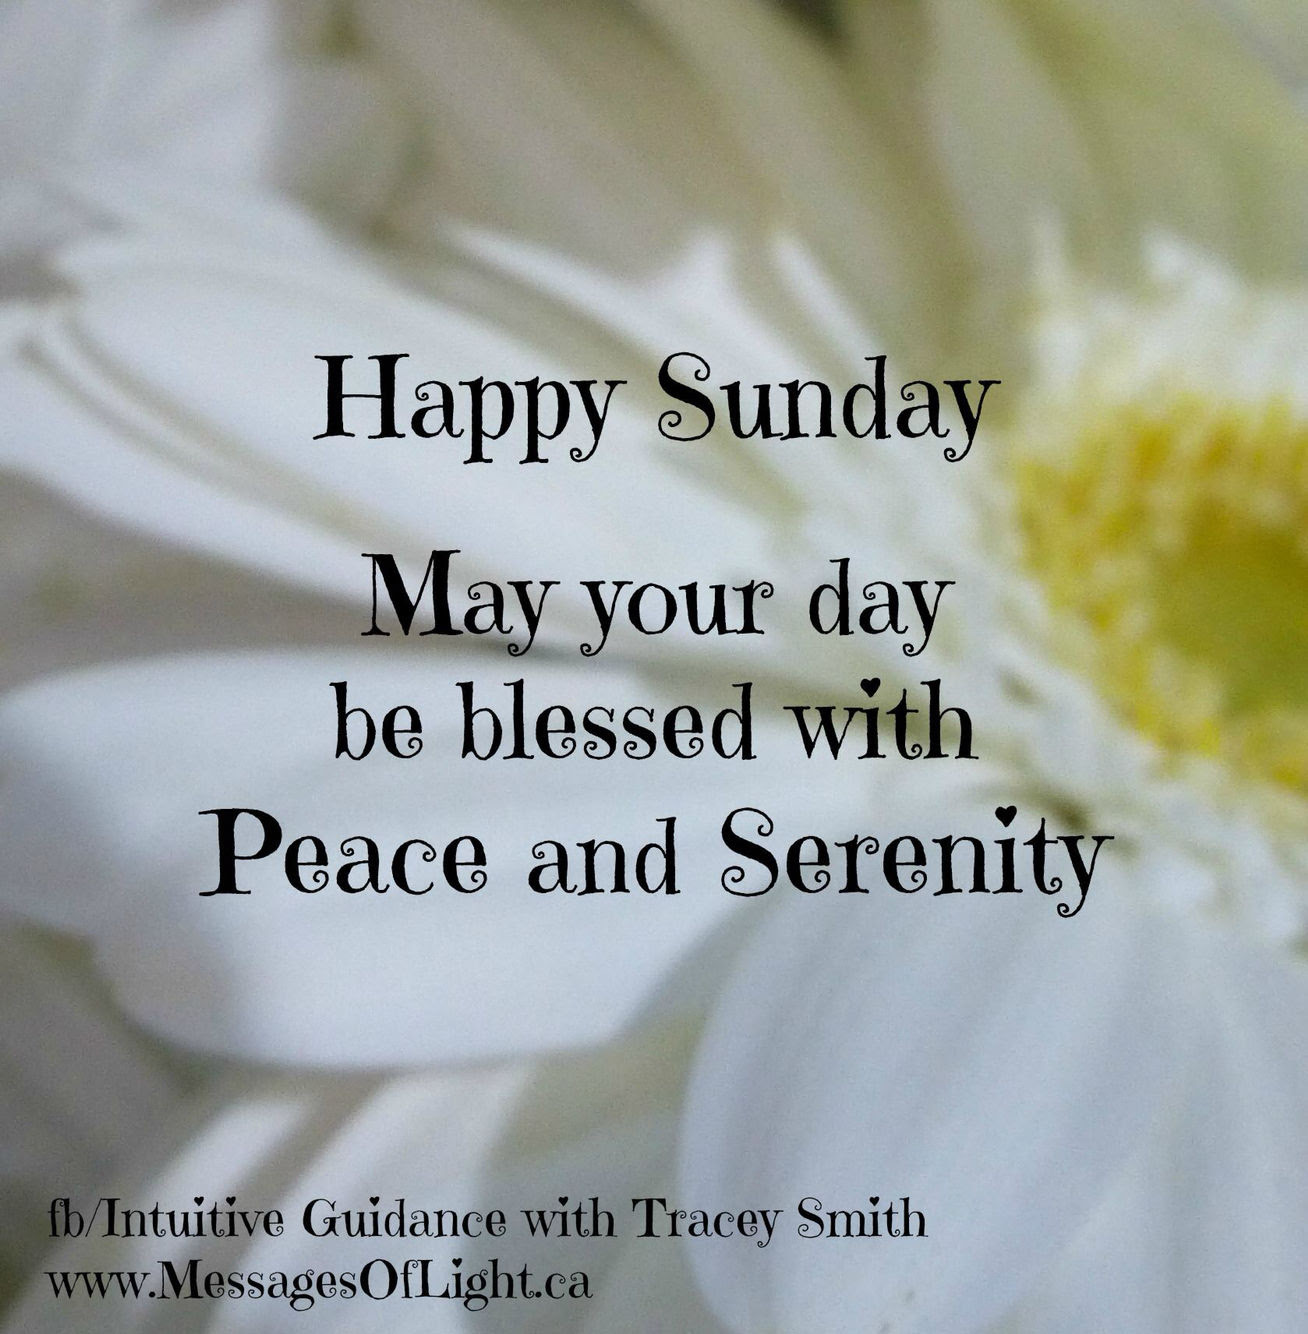 Happy Sunday May Your Day Be Blessed Pictures Photos And Images